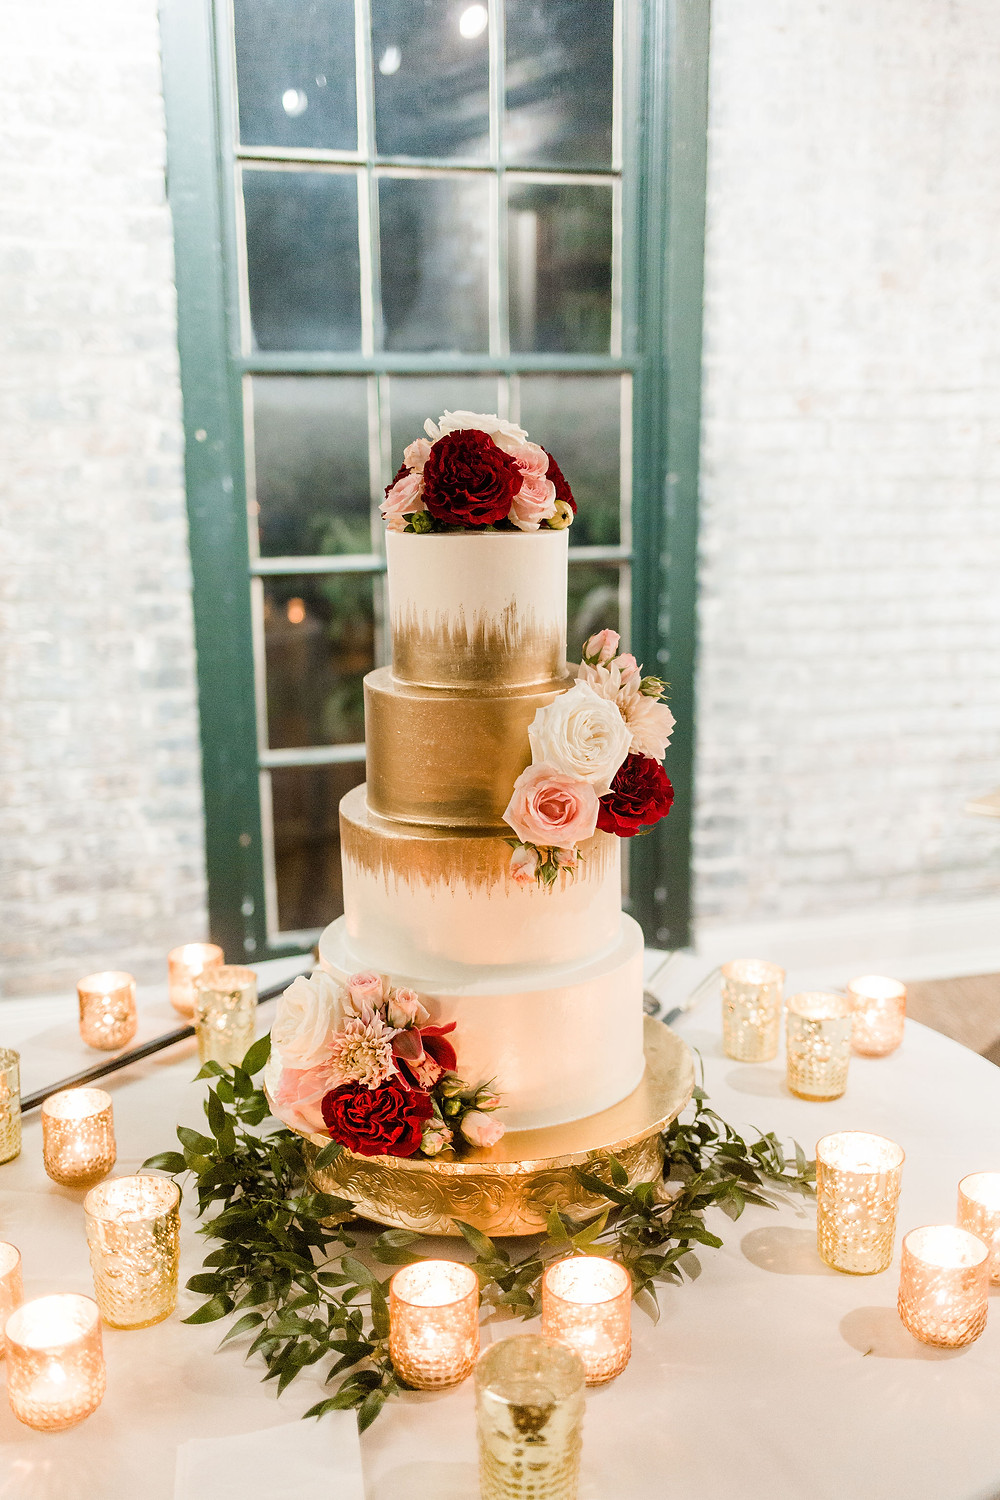 Chicory Wedding in New Orleans with Tasha Rae Photography, Mise En Place Events, Lovegood Wedding & Event Rentals | Cranberry Wedding, Vintage Rentals, Lounge Space, Wooden Backdrop Arbor, Wooden Crates, Gold Wedding Cake